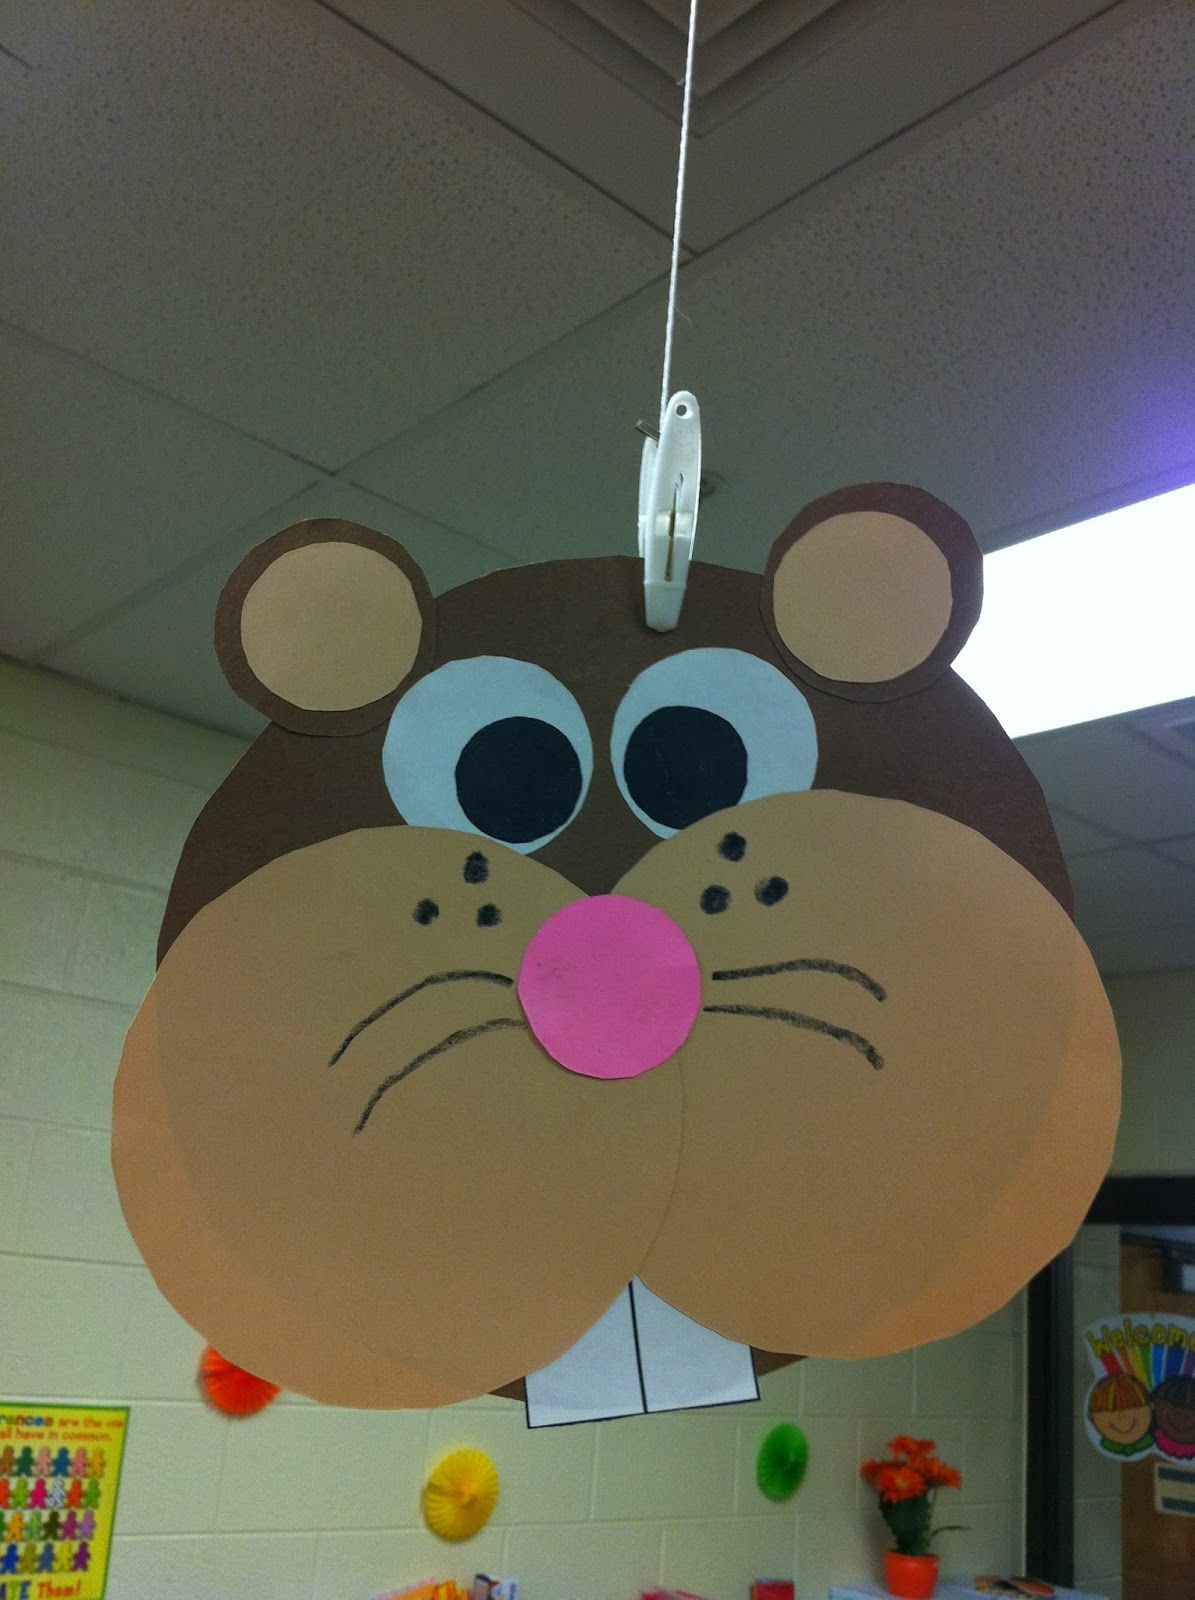 Creative Lesson Cafe Groundhog Day Classroom Fun Groundhog Day Activities Groundhog Day Ground Hog Day Crafts [ 1600 x 1195 Pixel ]